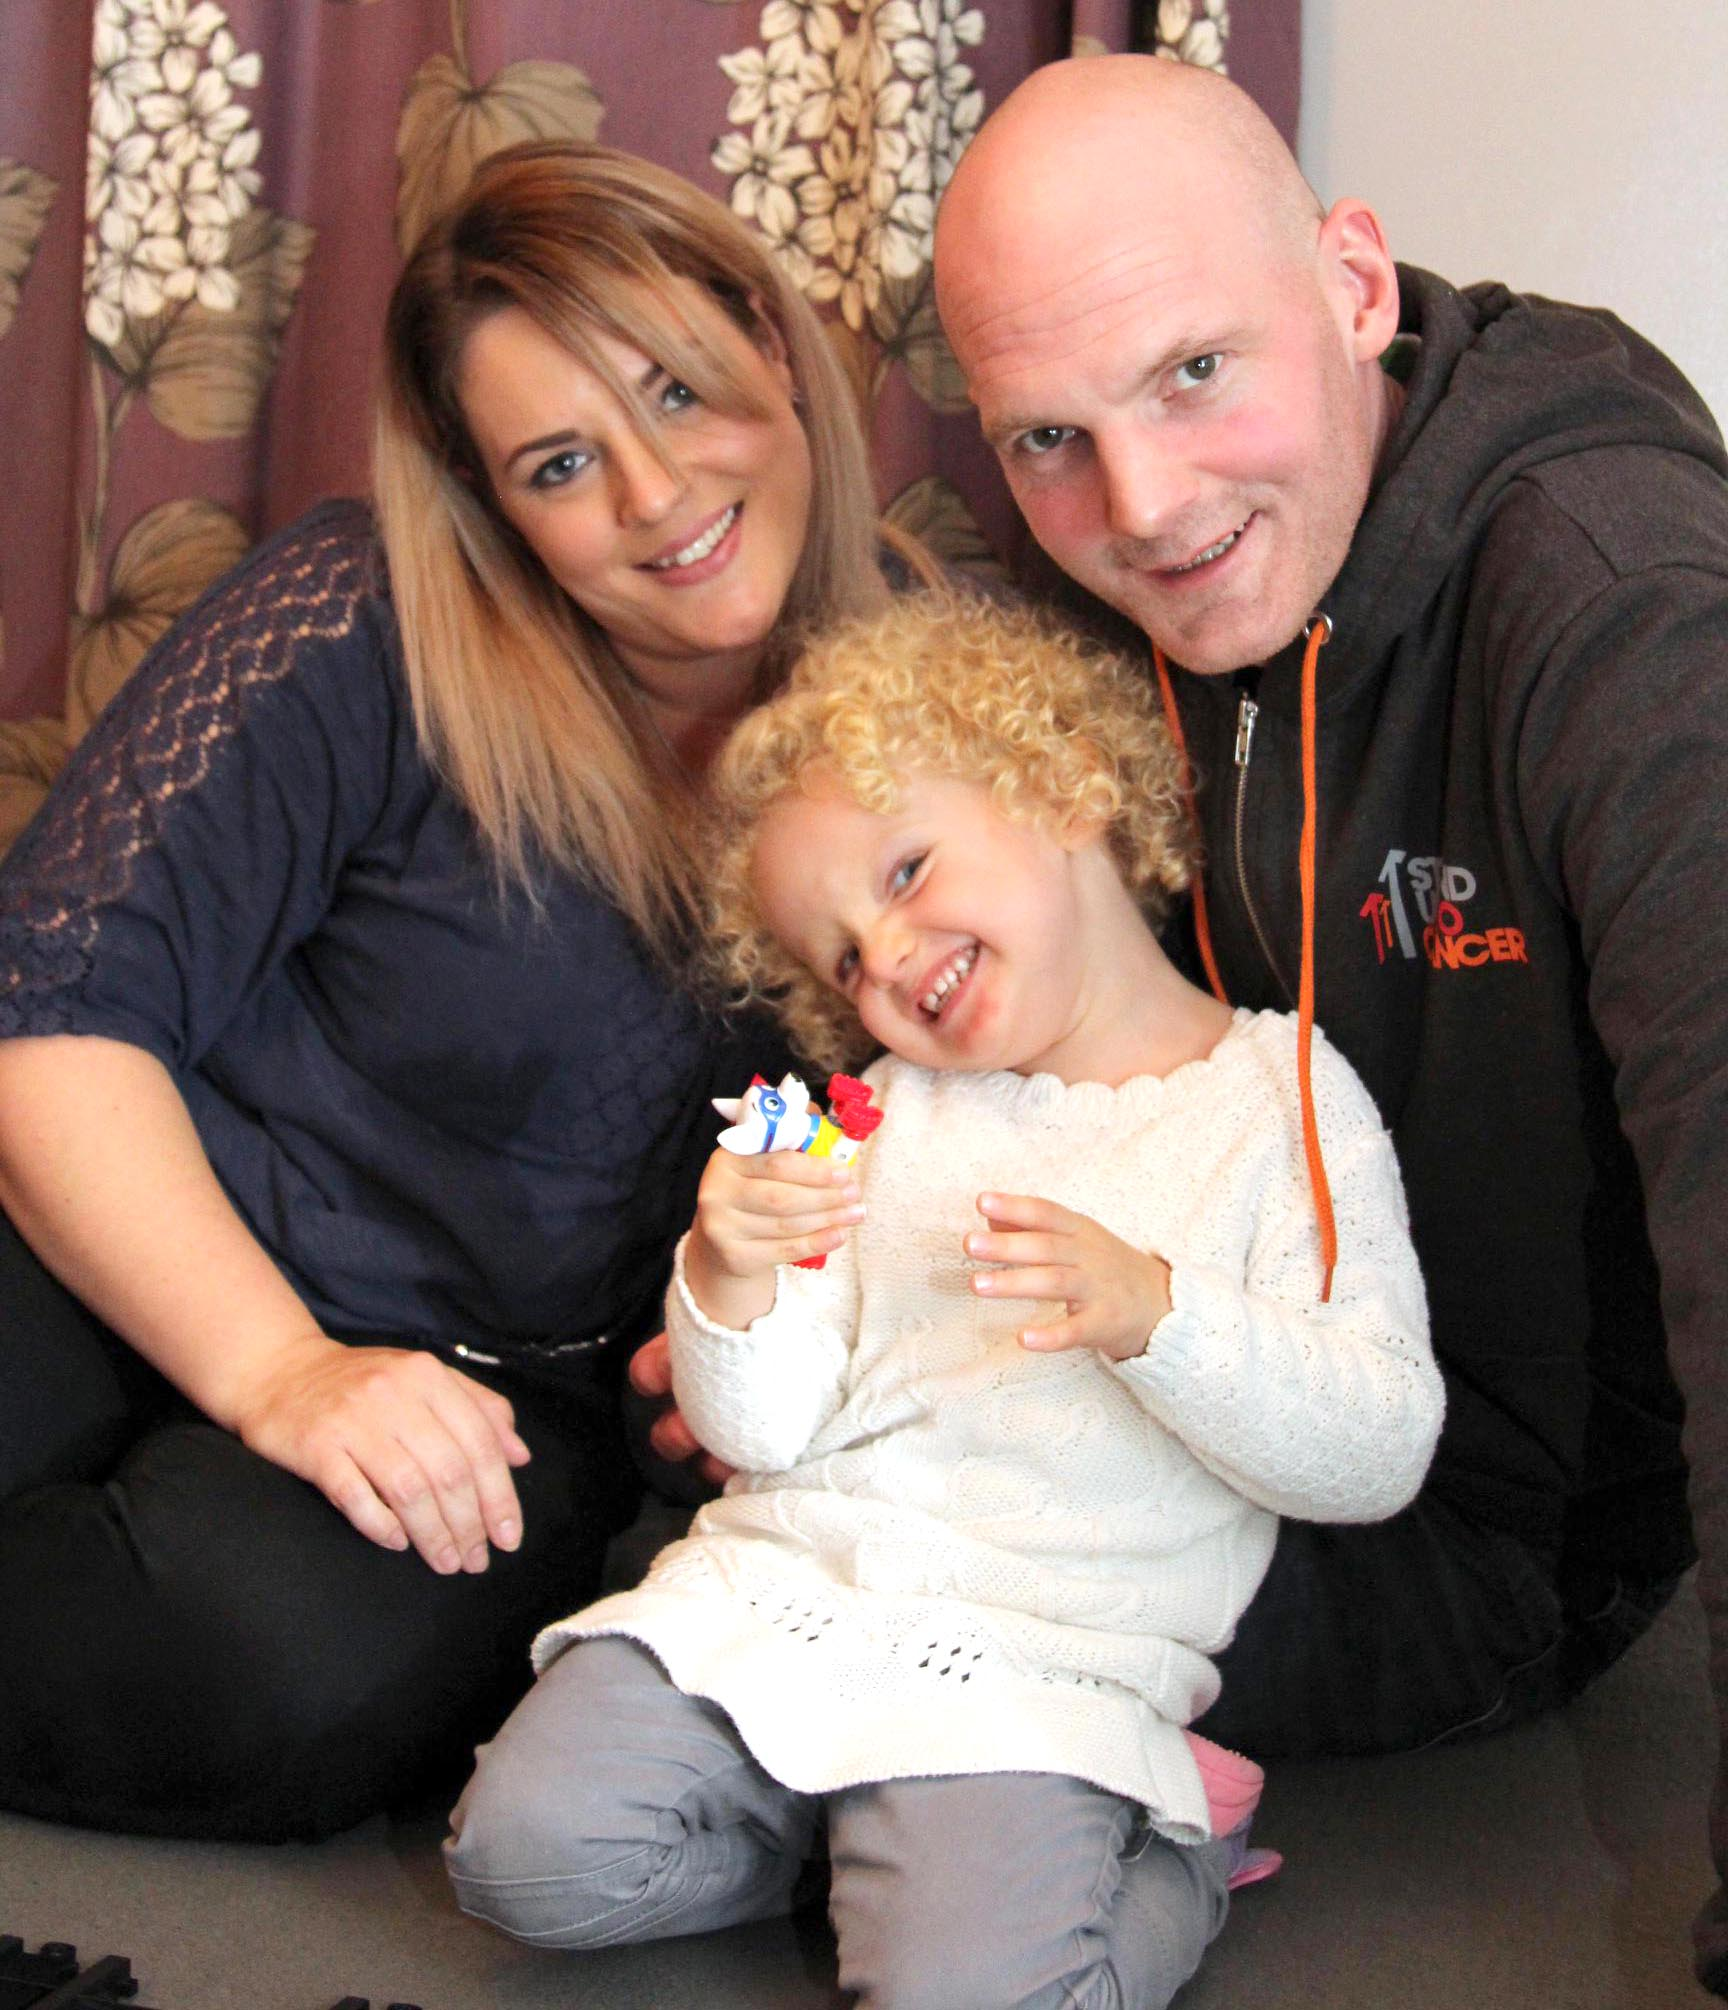 Aycliffe Leukaemia Victim Campaigns For Blood Donors